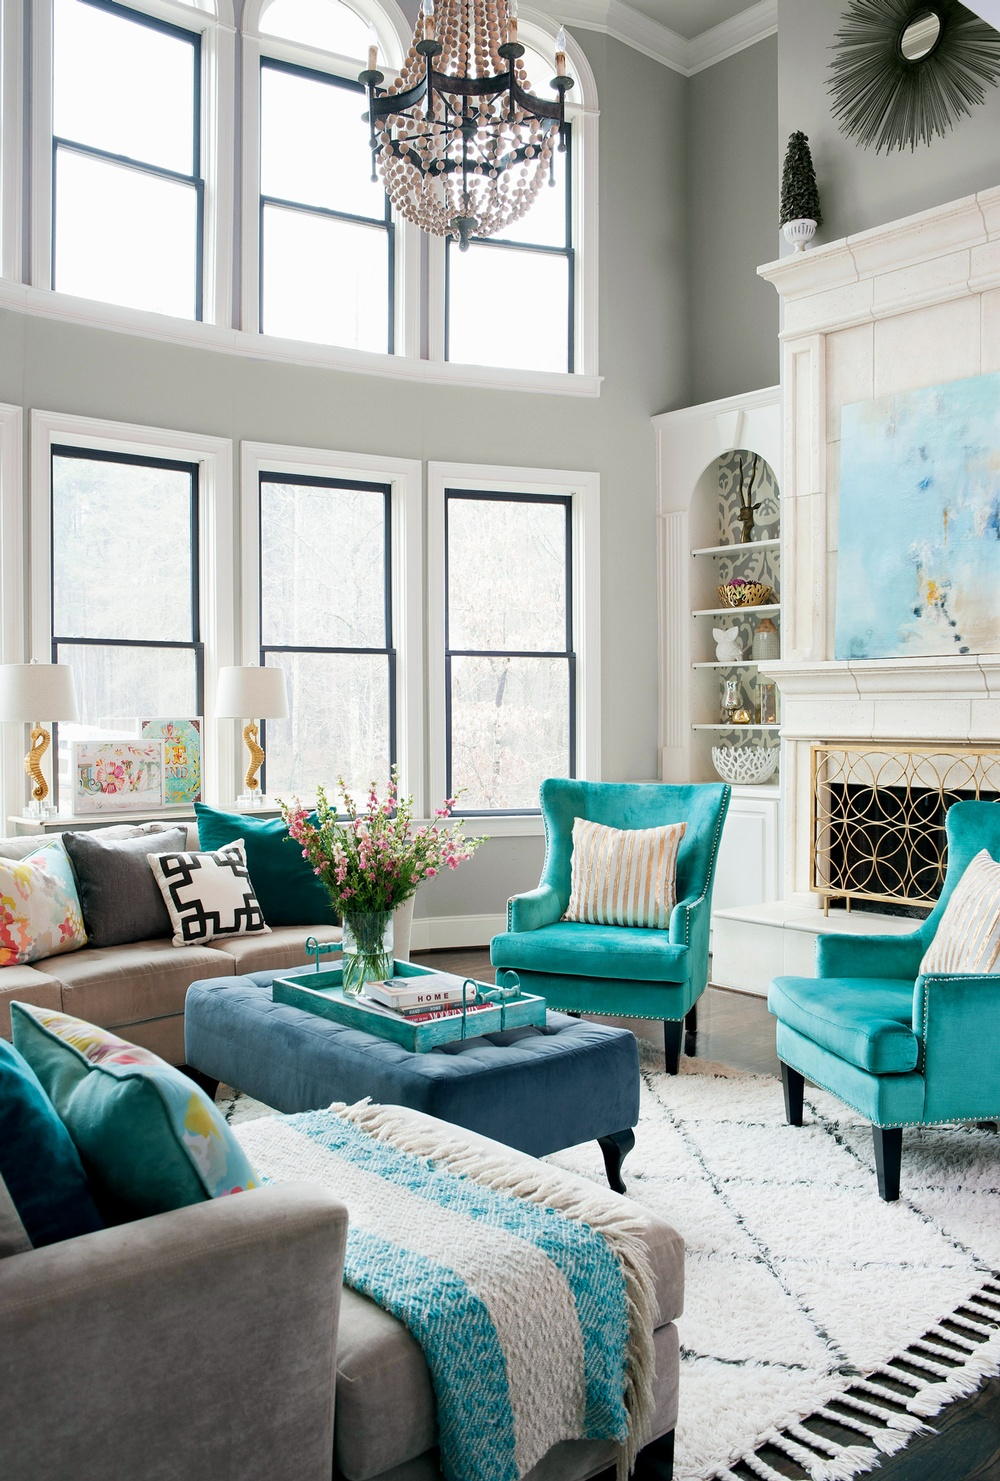 grey-walls-turquoise-furniture-8005b71f.jpg